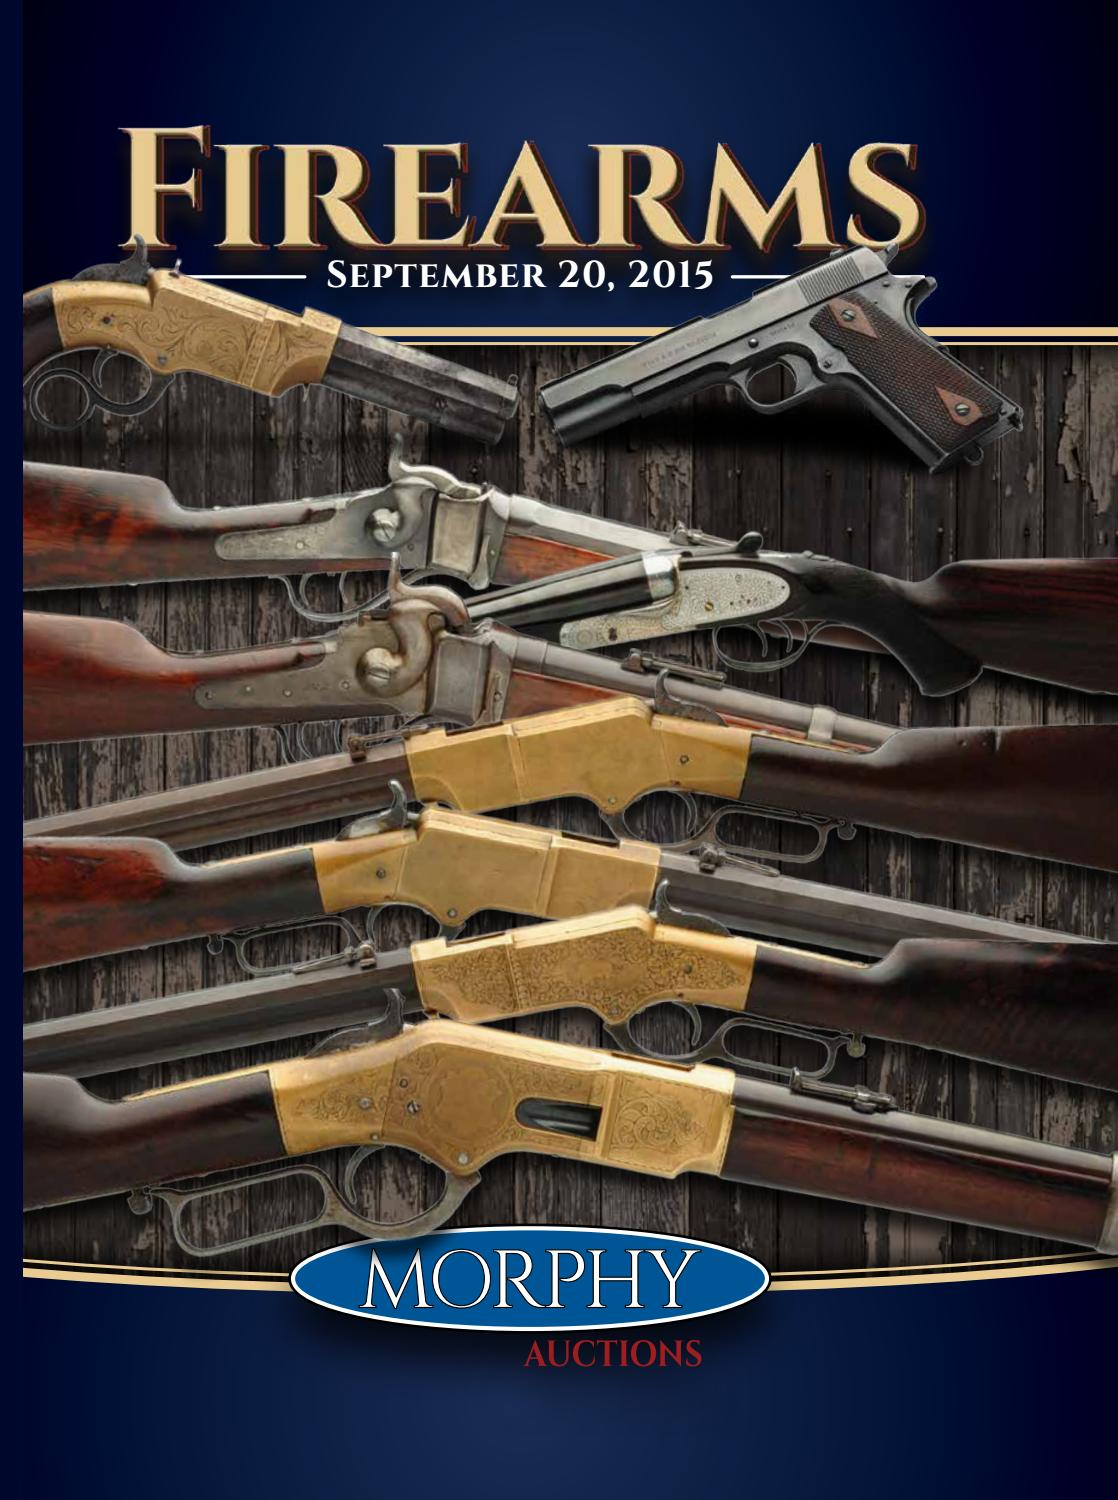 2015 September 20 Firearms by Morphy Auctions - issuu